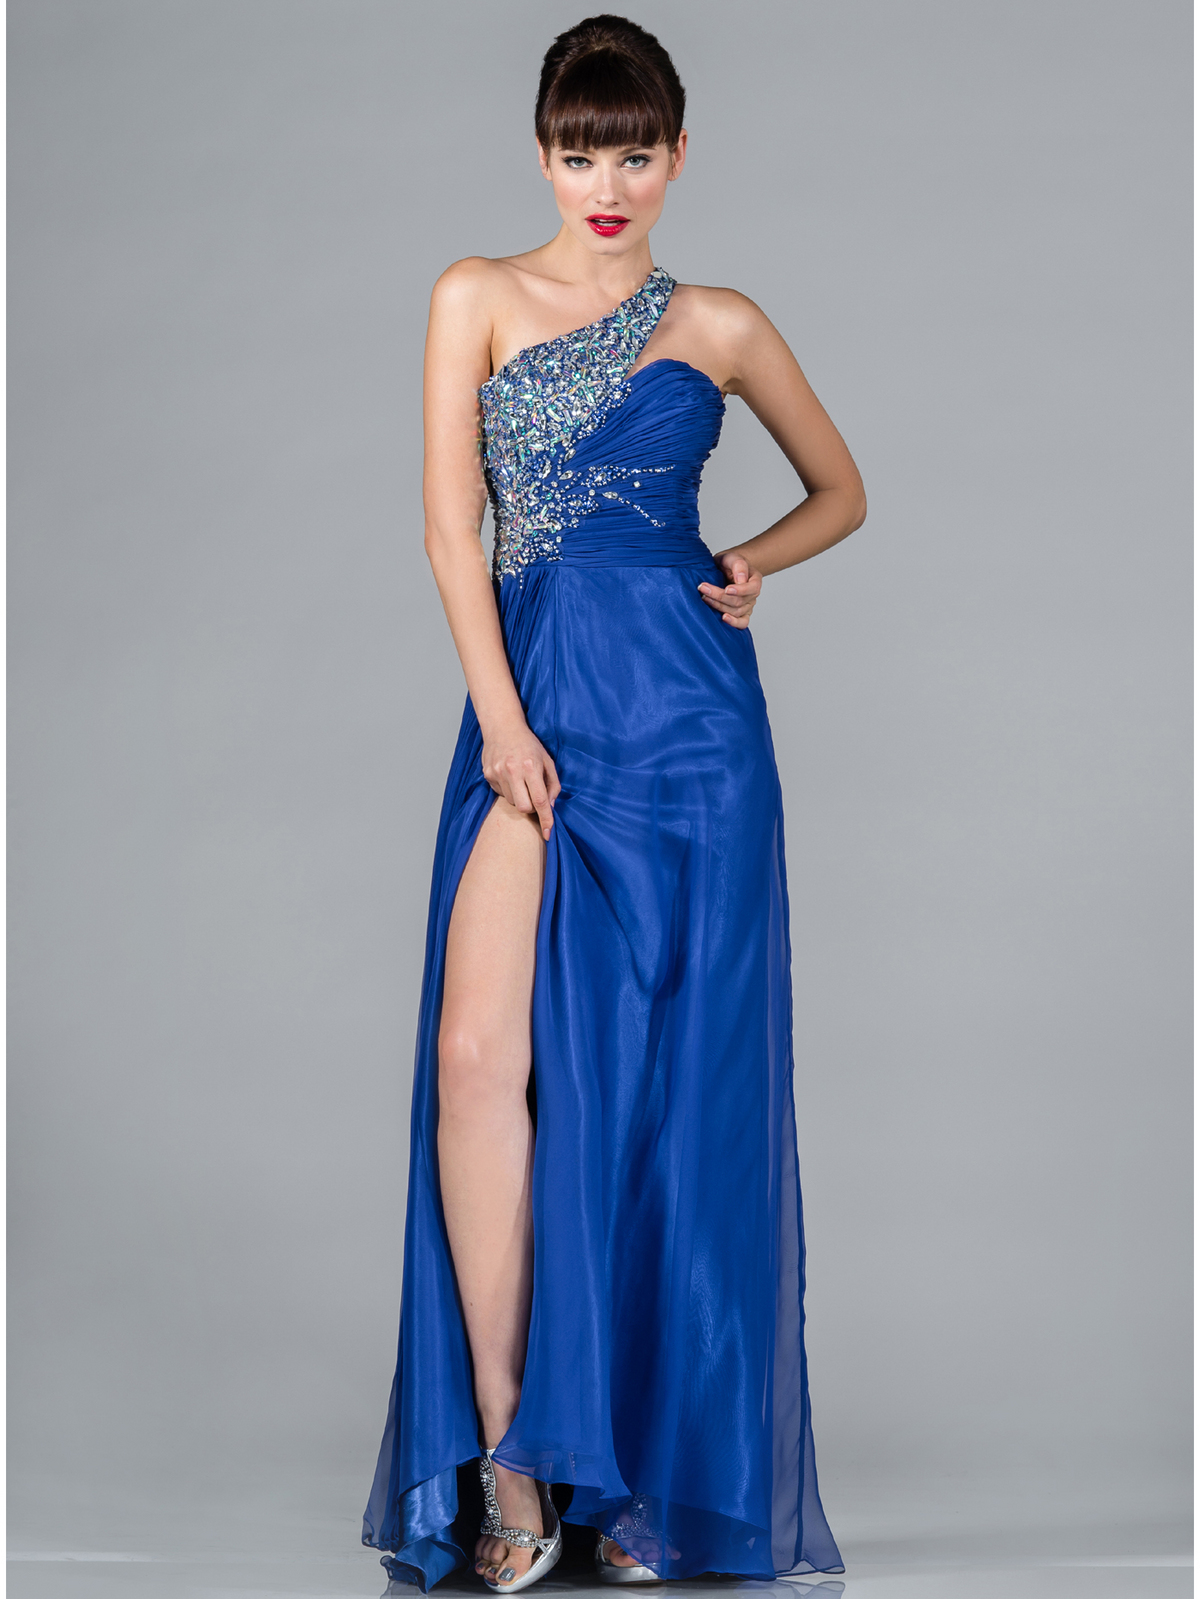 Jeweled and Pleated Prom Dress | Sung Boutique L.A.